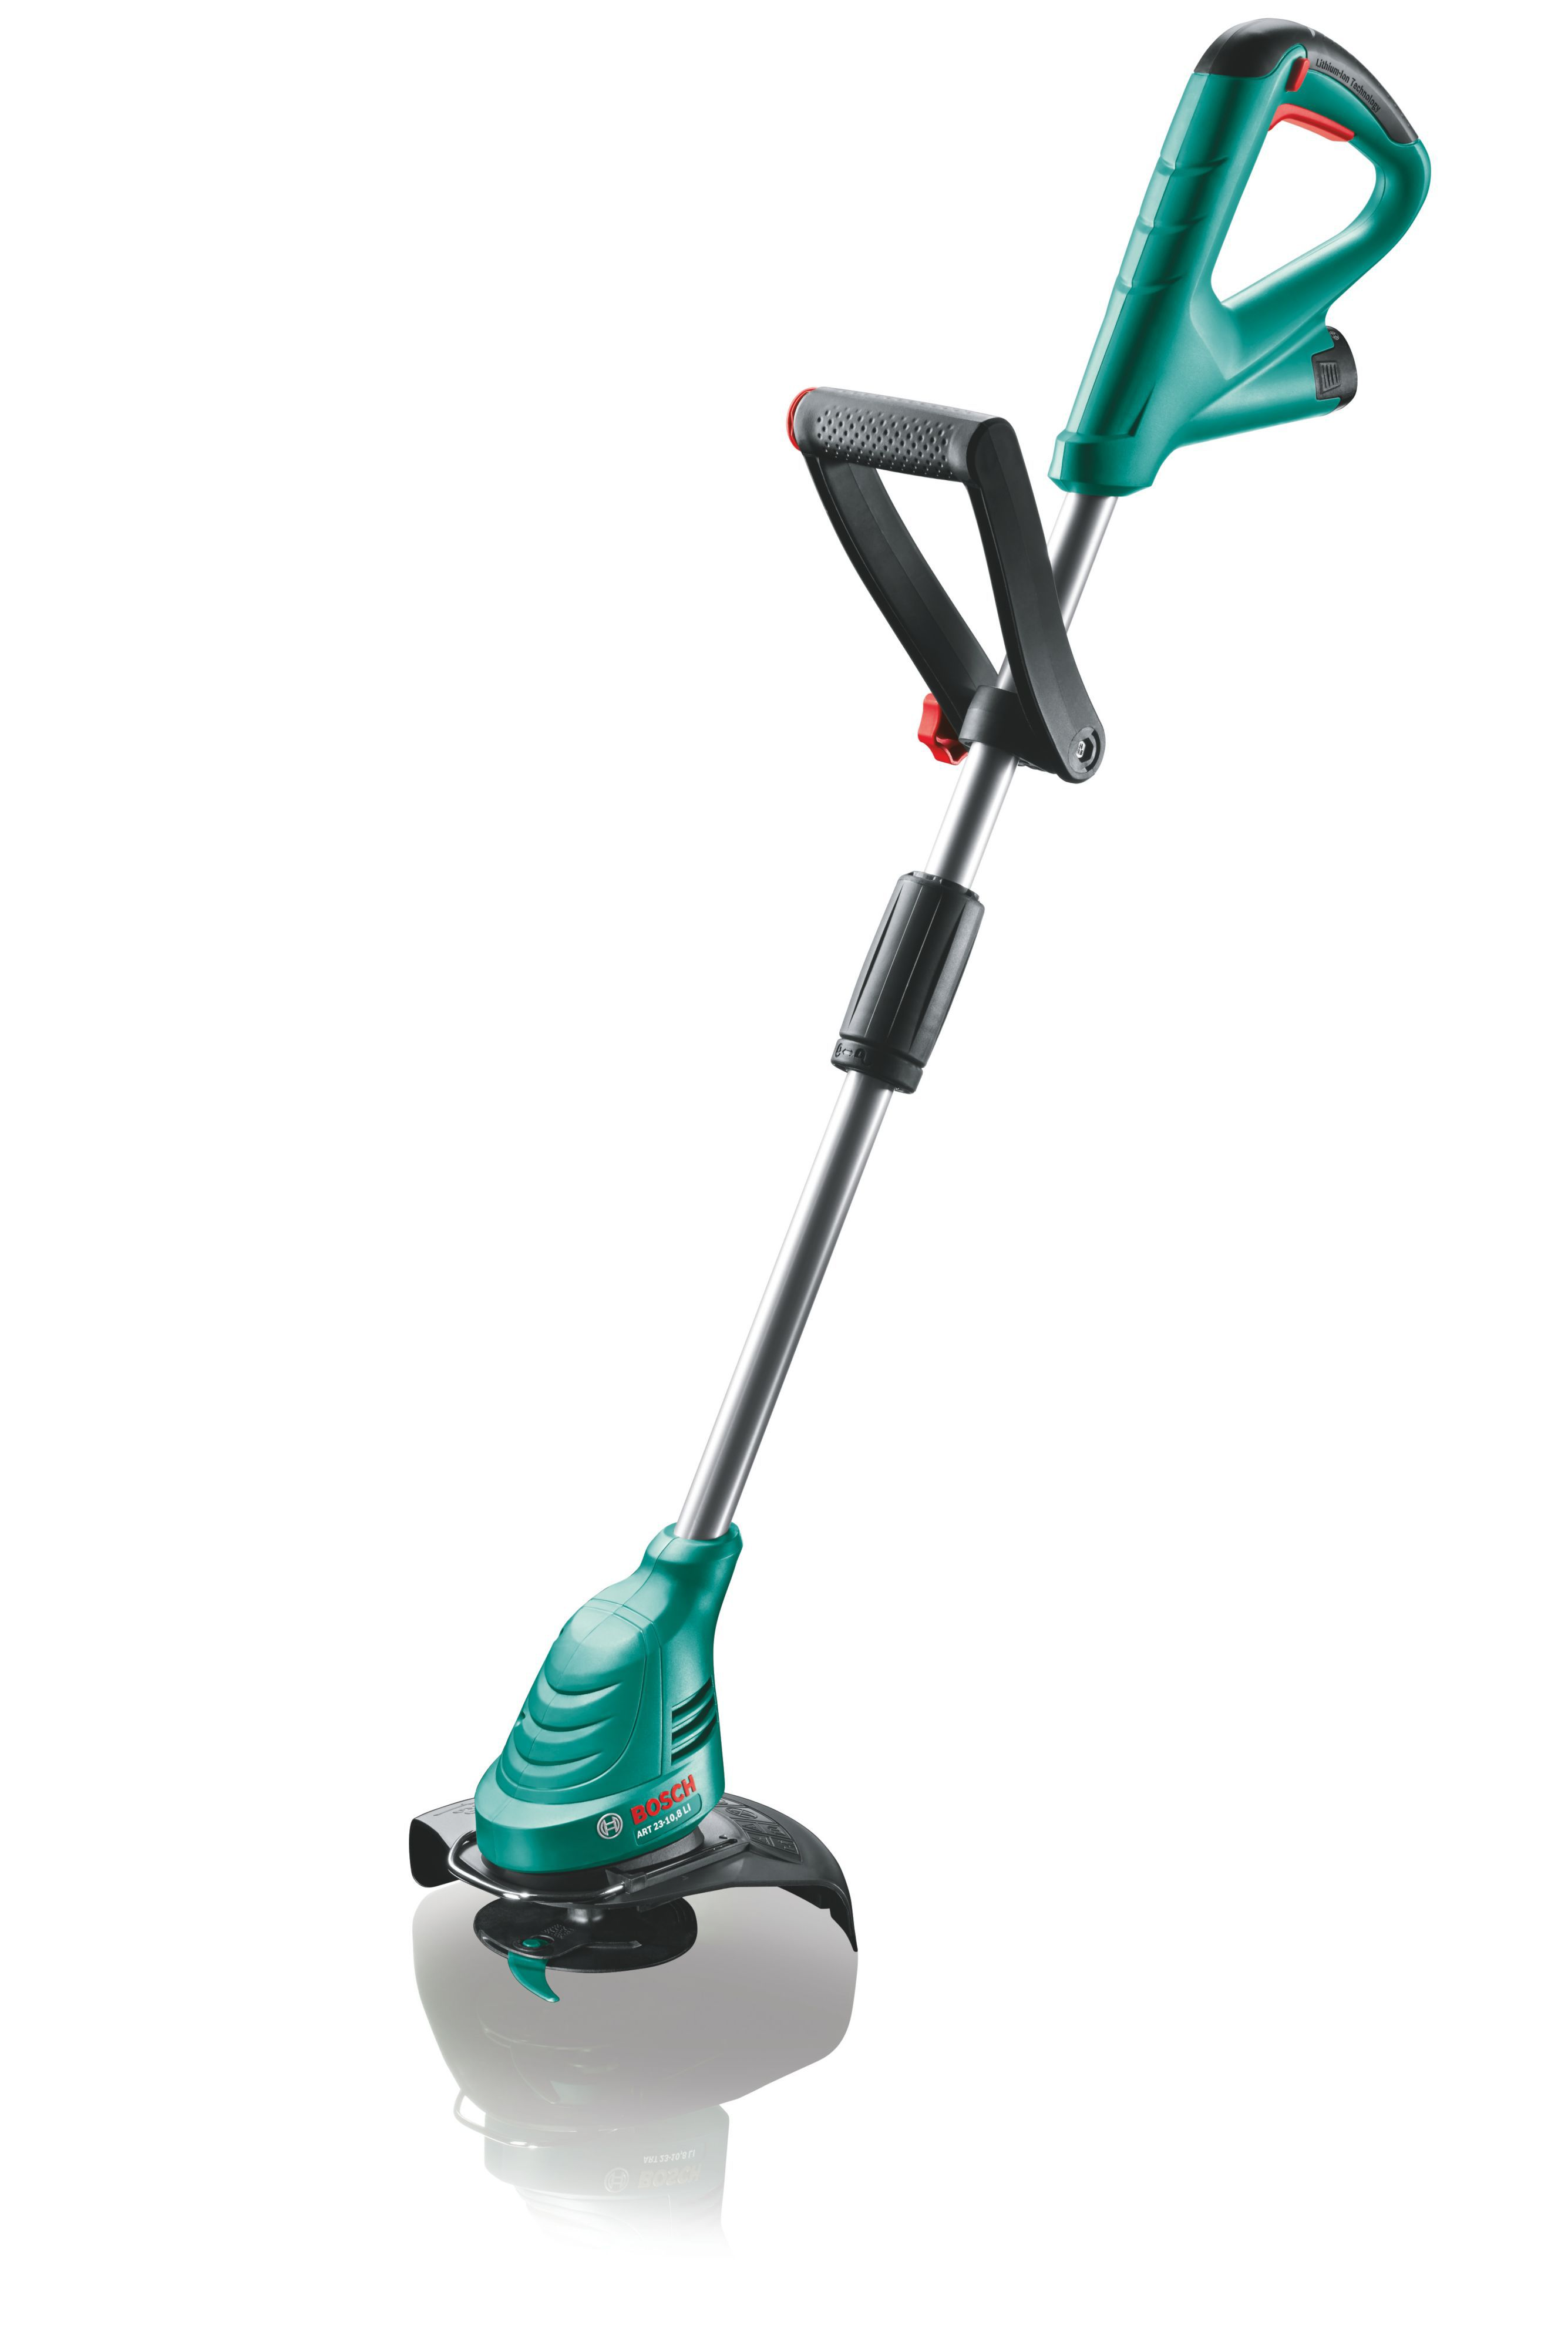 Bosch Easygrasscut 12-23 Battery Cordless Li-ion Grass Trimmer